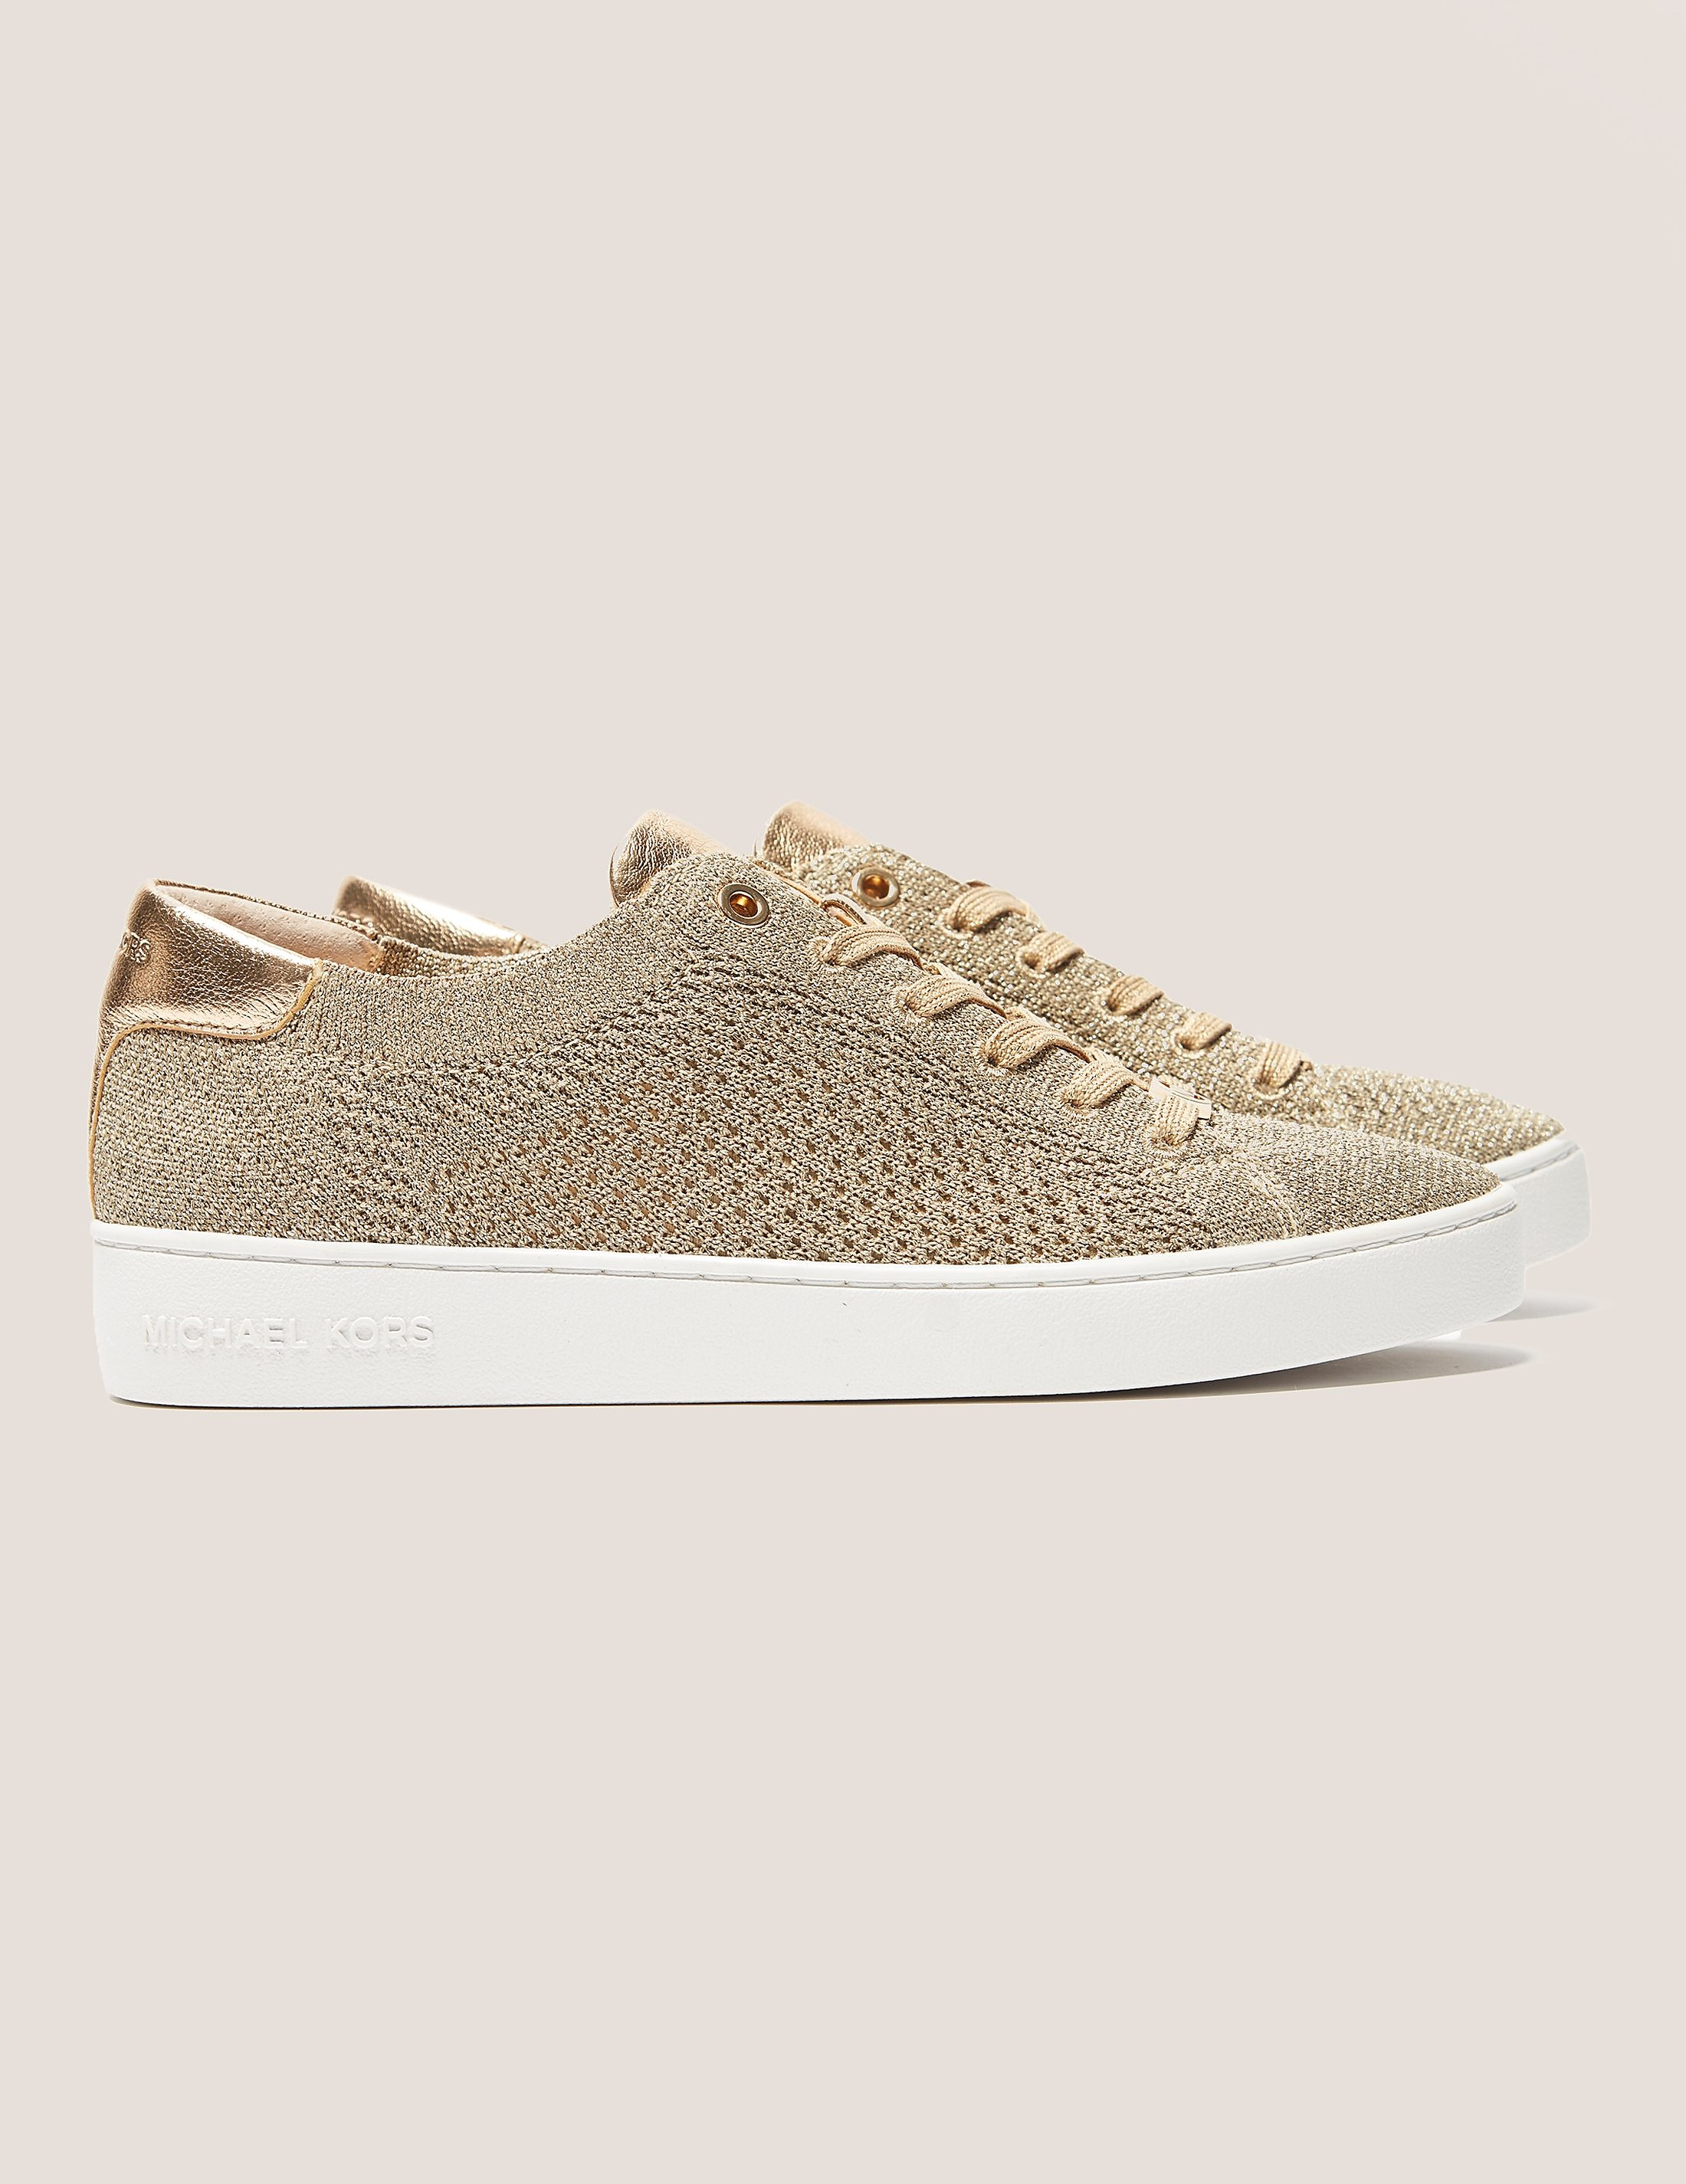 Michael Kors Syler Knit Sneakers